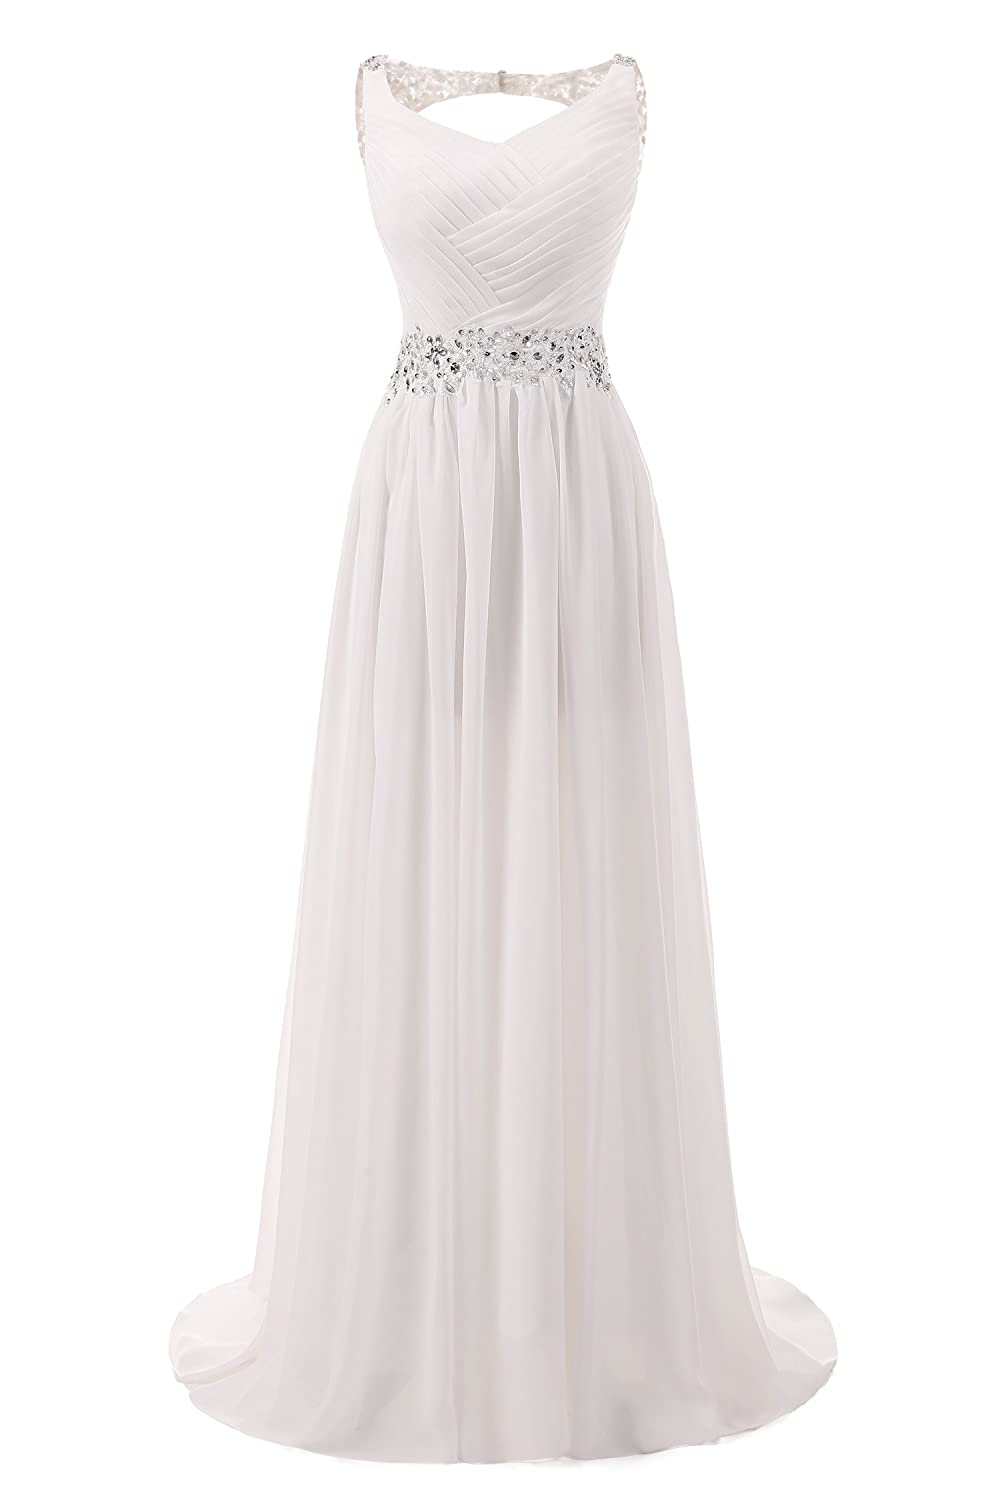 AbaoWedding Women's Chiffon V Neck Shoulder Straps Long Wedding Evening Dress